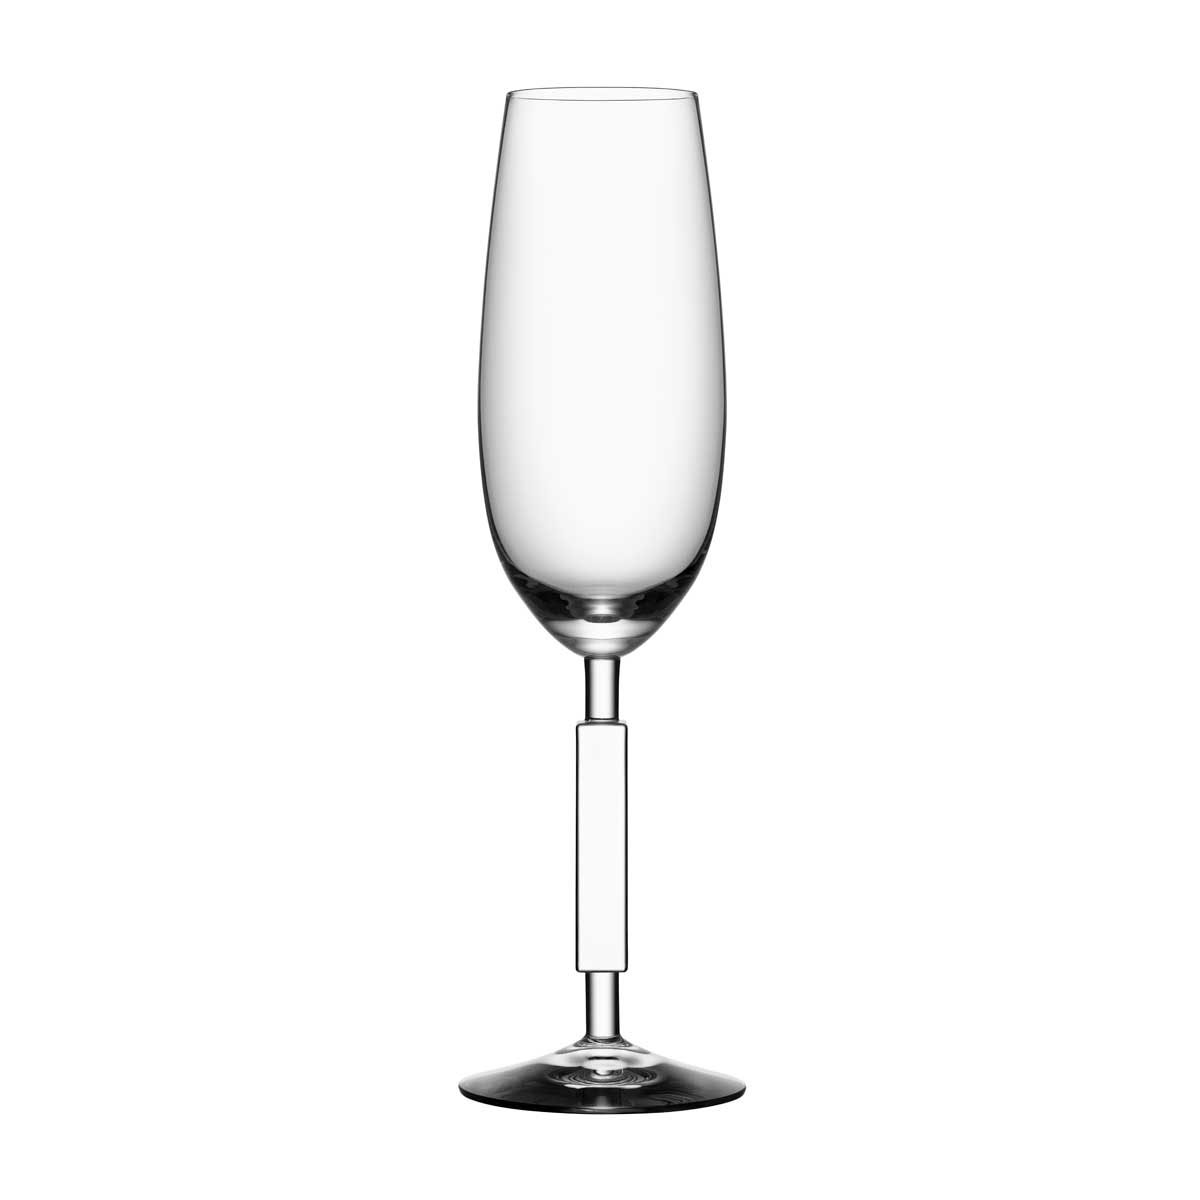 Orrefors Crystal, Unique Crystal Champagne, Single